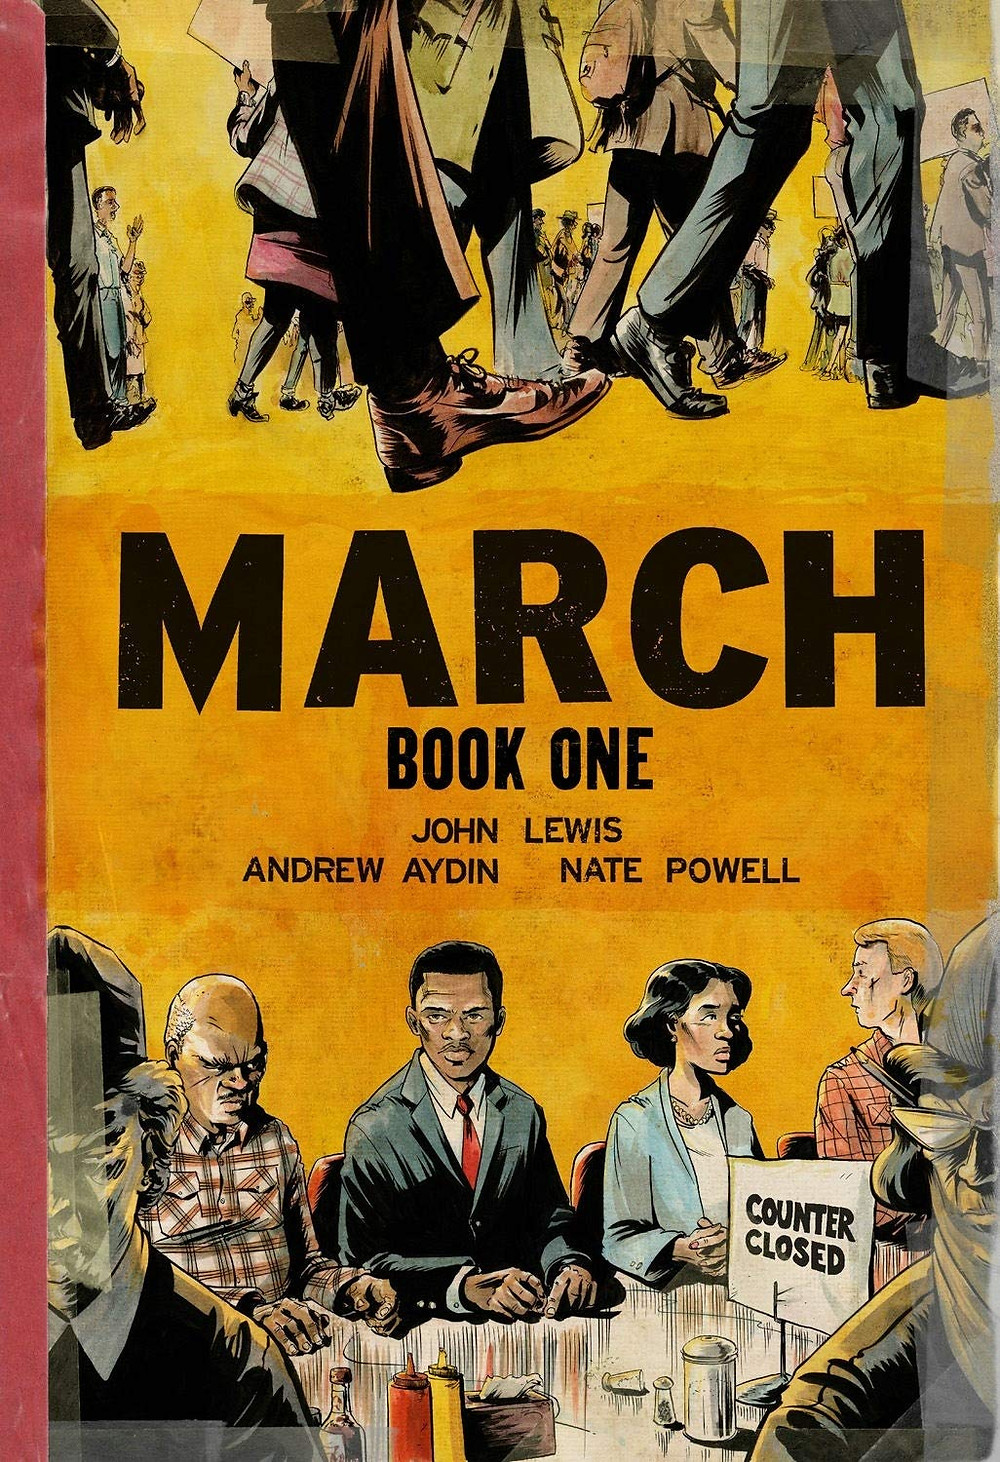 """The cover of March Book One. The top half of the cover shows legs and feet of marchers during the Civil Rights protests. The bottom half of the cover shows two black men and one black woman sitting at a counter surrounding by white people with a sign stating """"counter closed"""" sitting in front of them."""